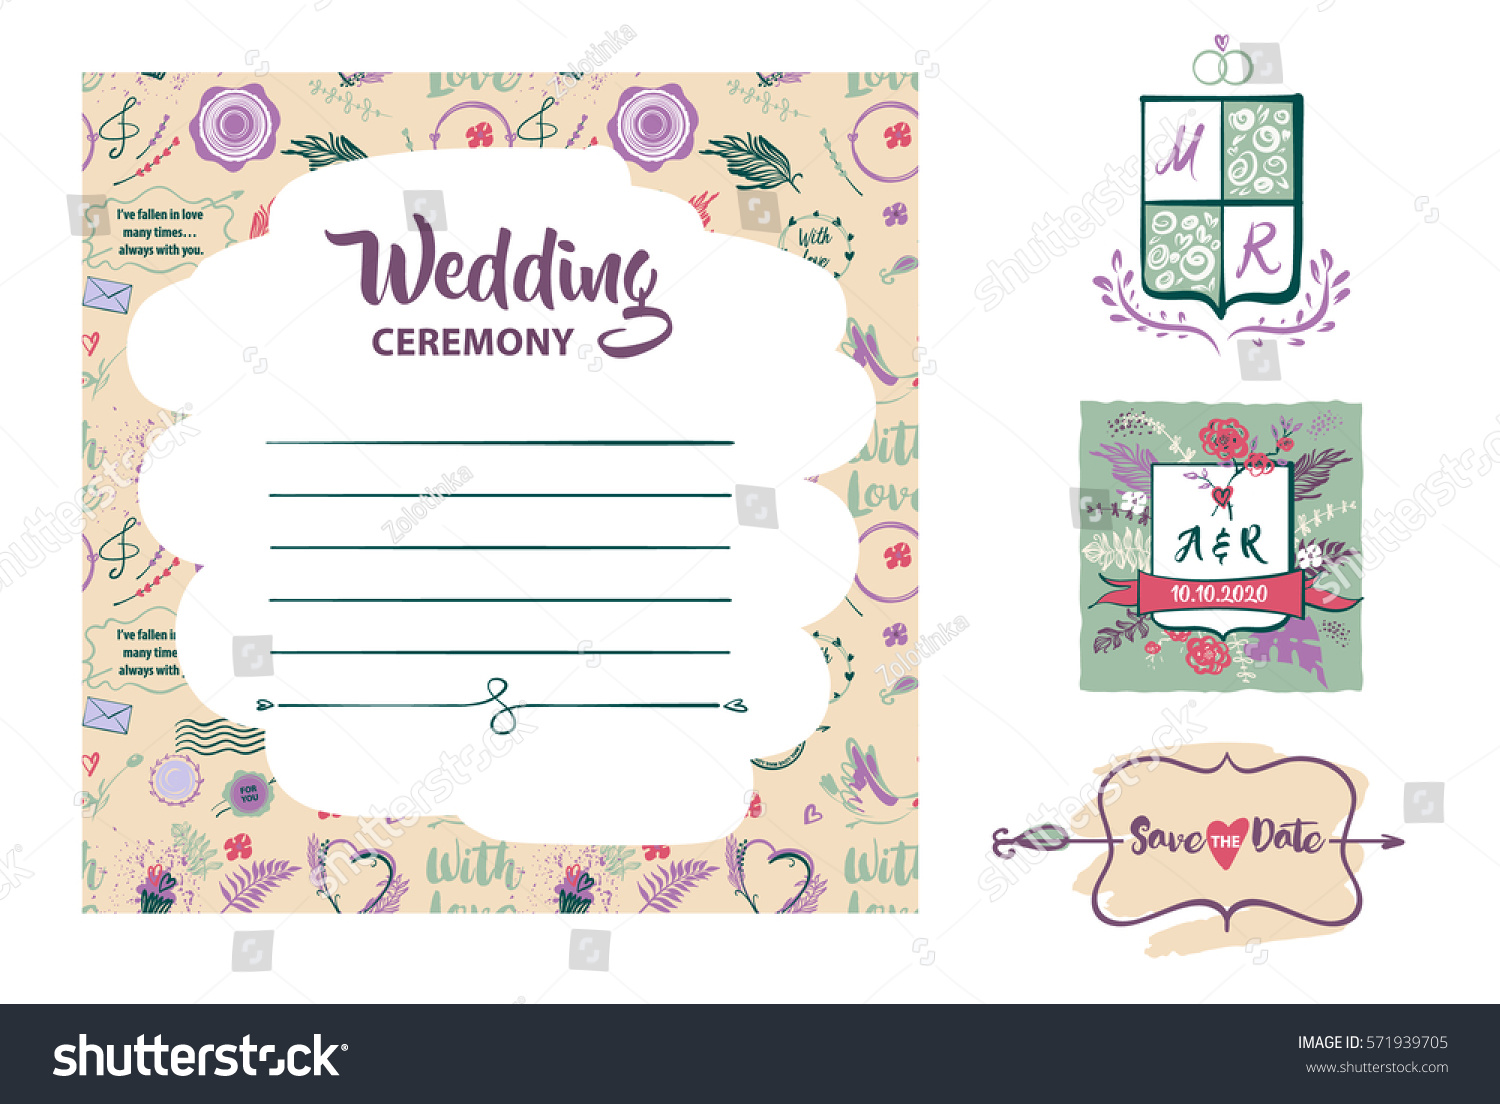 Free hand drawn template vector invitation stock vector 571939705 free hand drawn template vector invitation for wedding ceremony with open space for text save stopboris Image collections